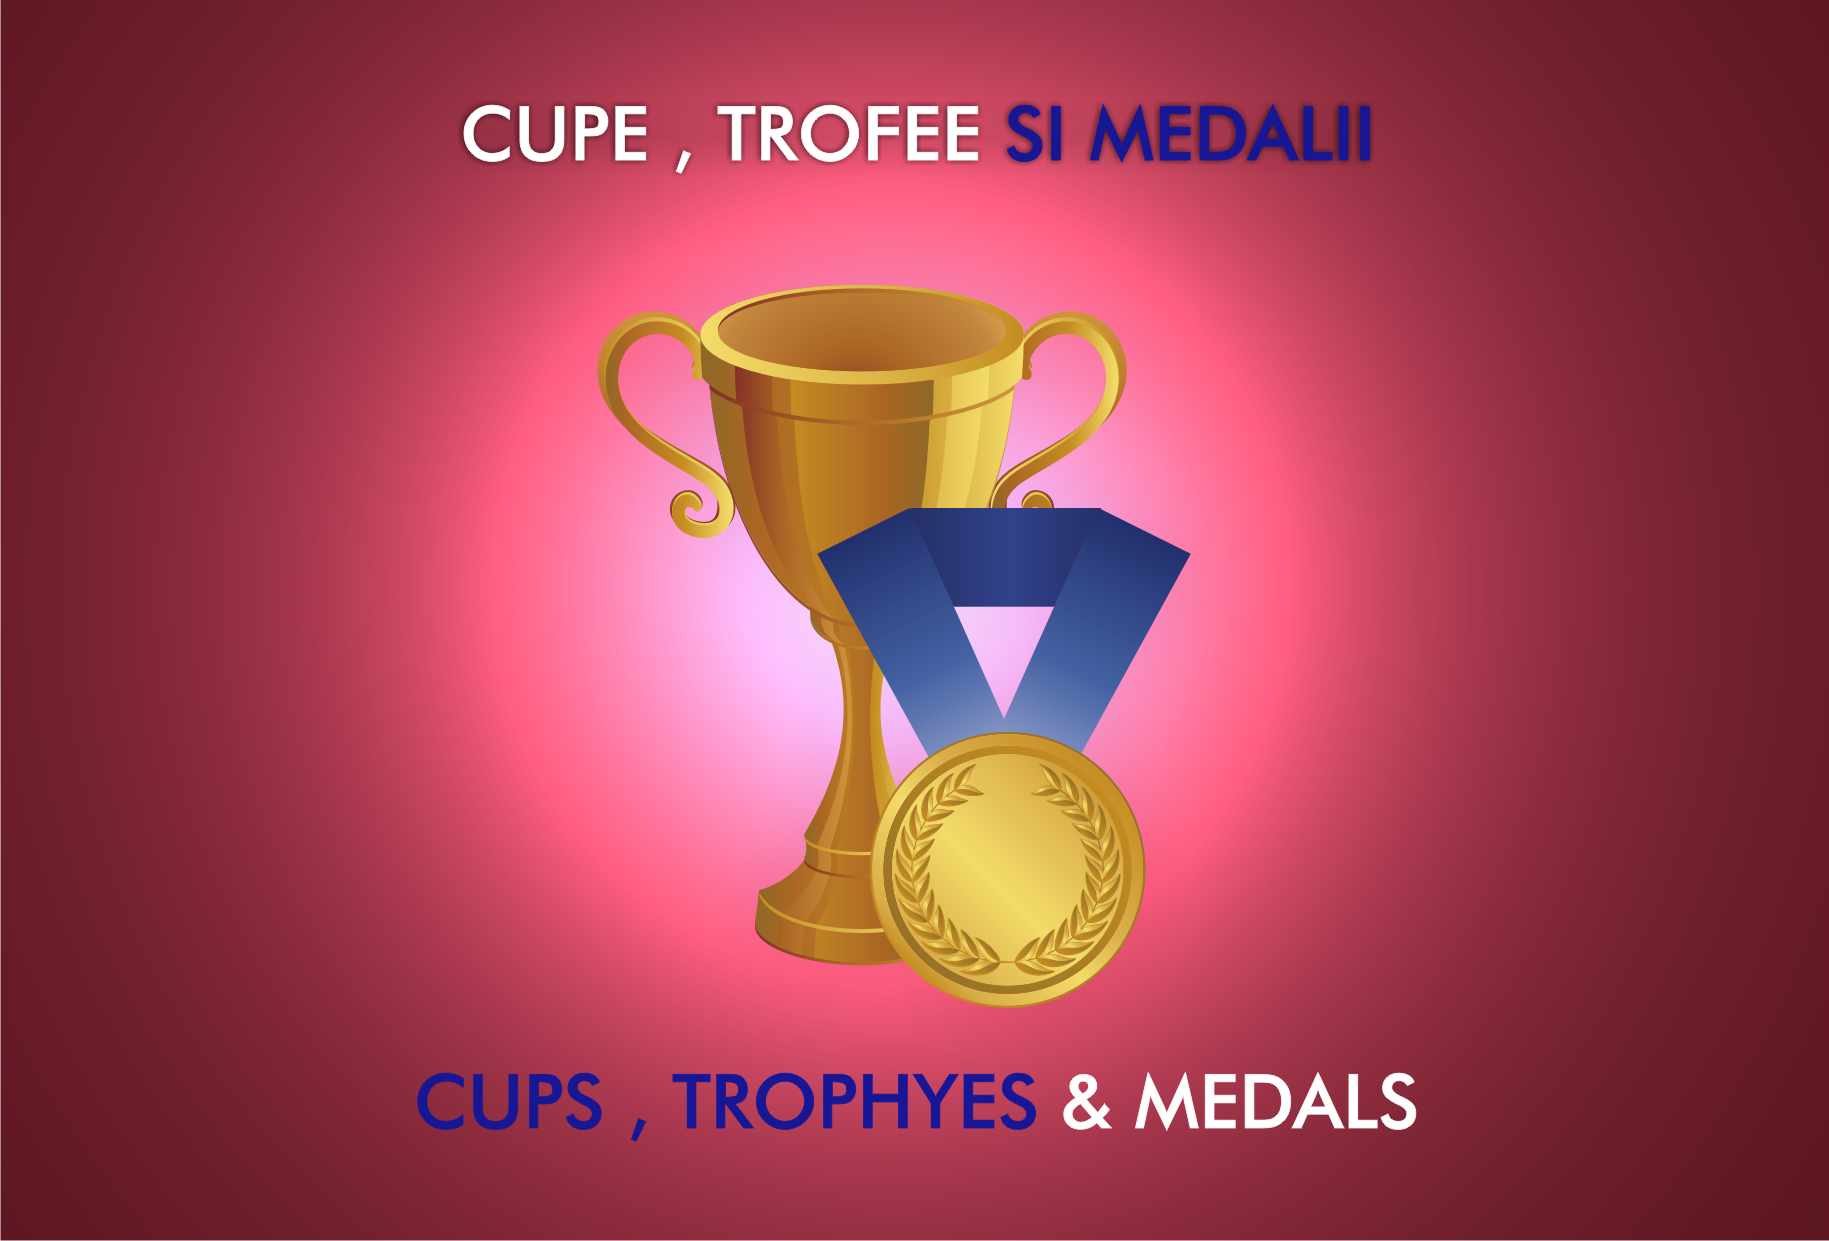 Cupe, Trofee si Medalii